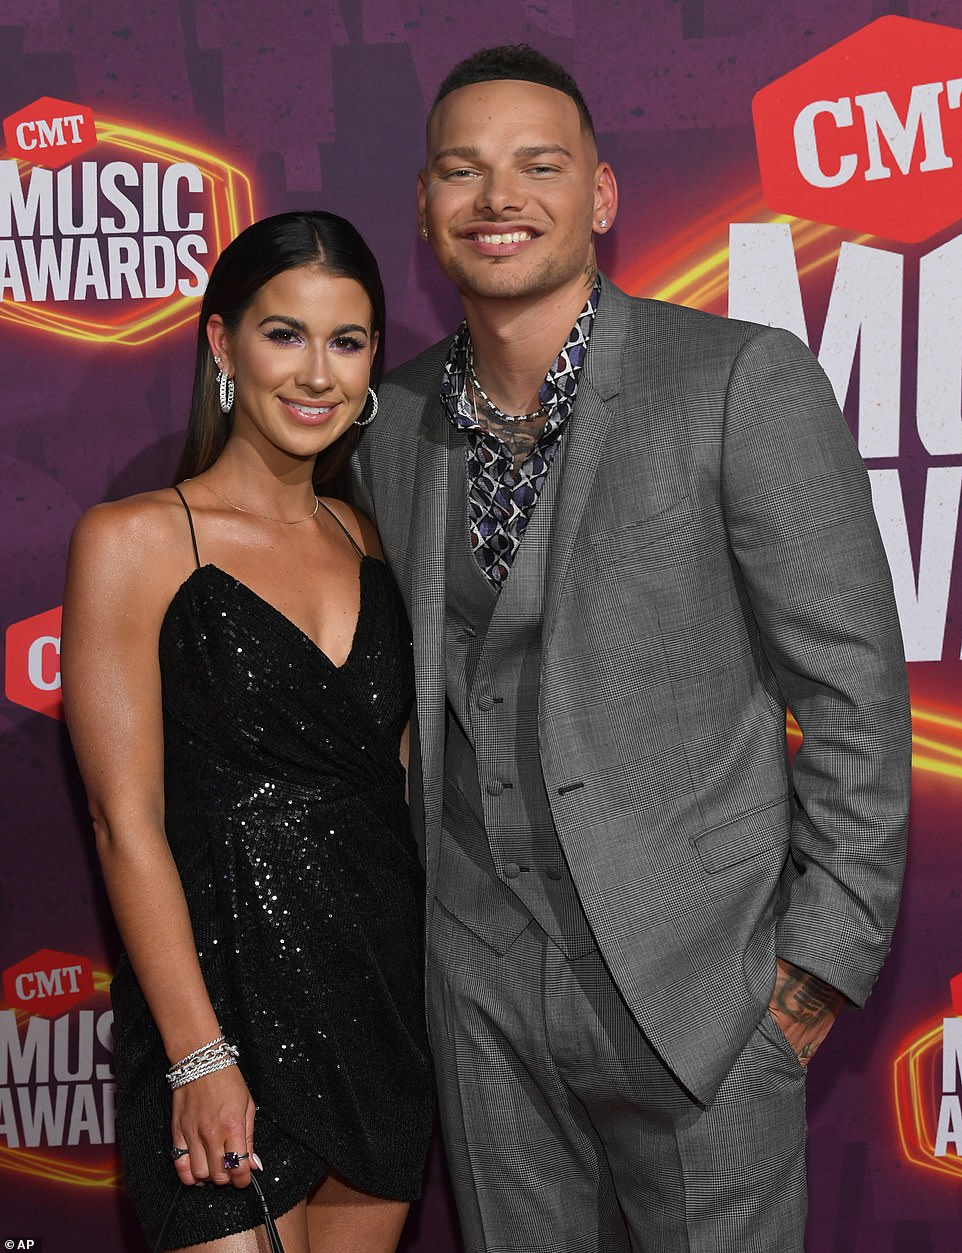 Support system: The singer-songwriter, 27, was accompanied by his stunning wife Katelyn Jae, who he married in 2018